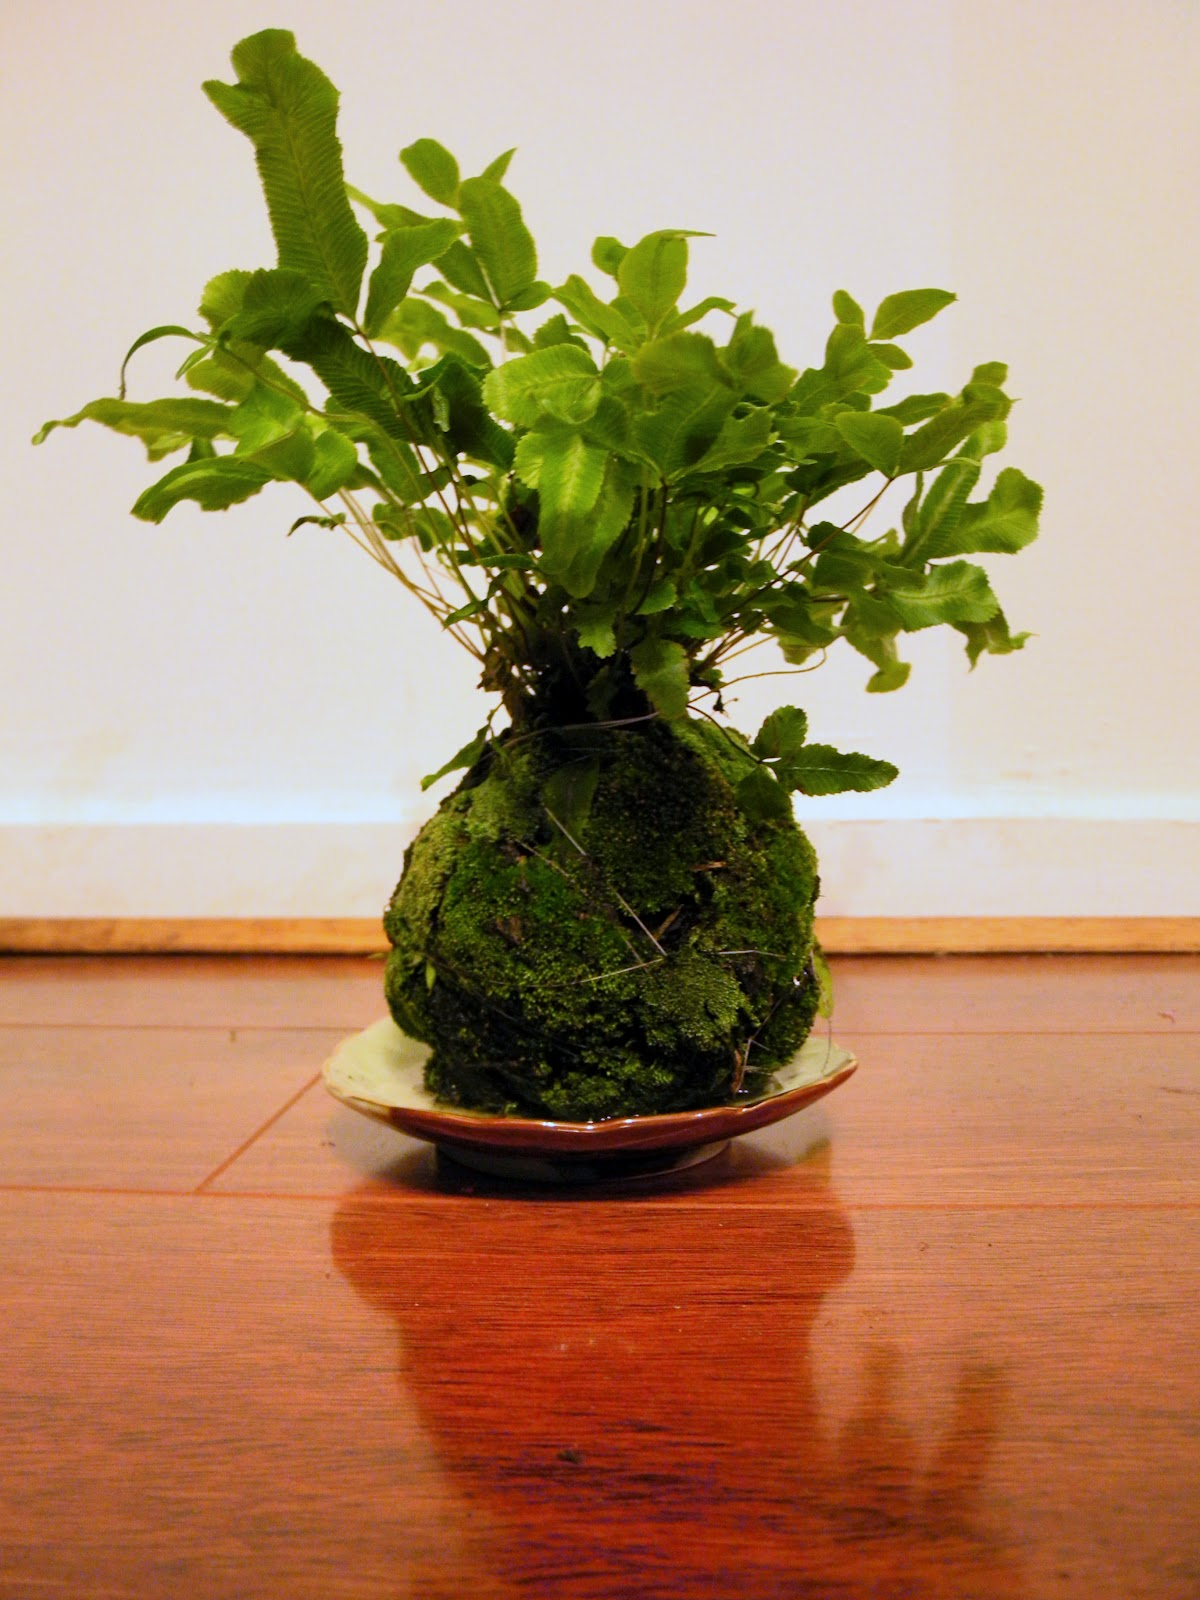 mel miller  kokedama  the japanese moss ball